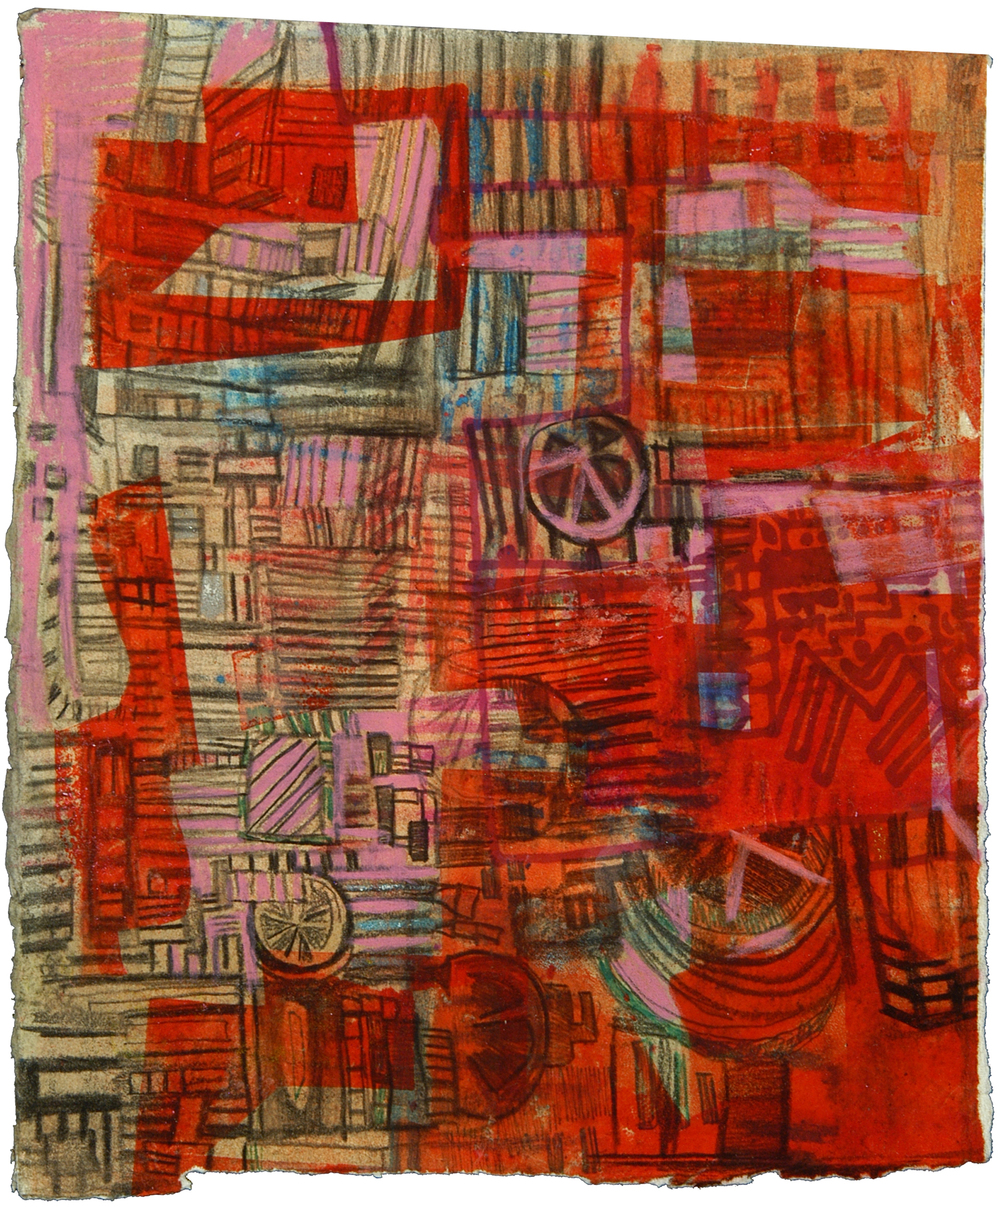 "Red Death Map | Pencil, marker, and ink on paper | 12"" x 7"" 